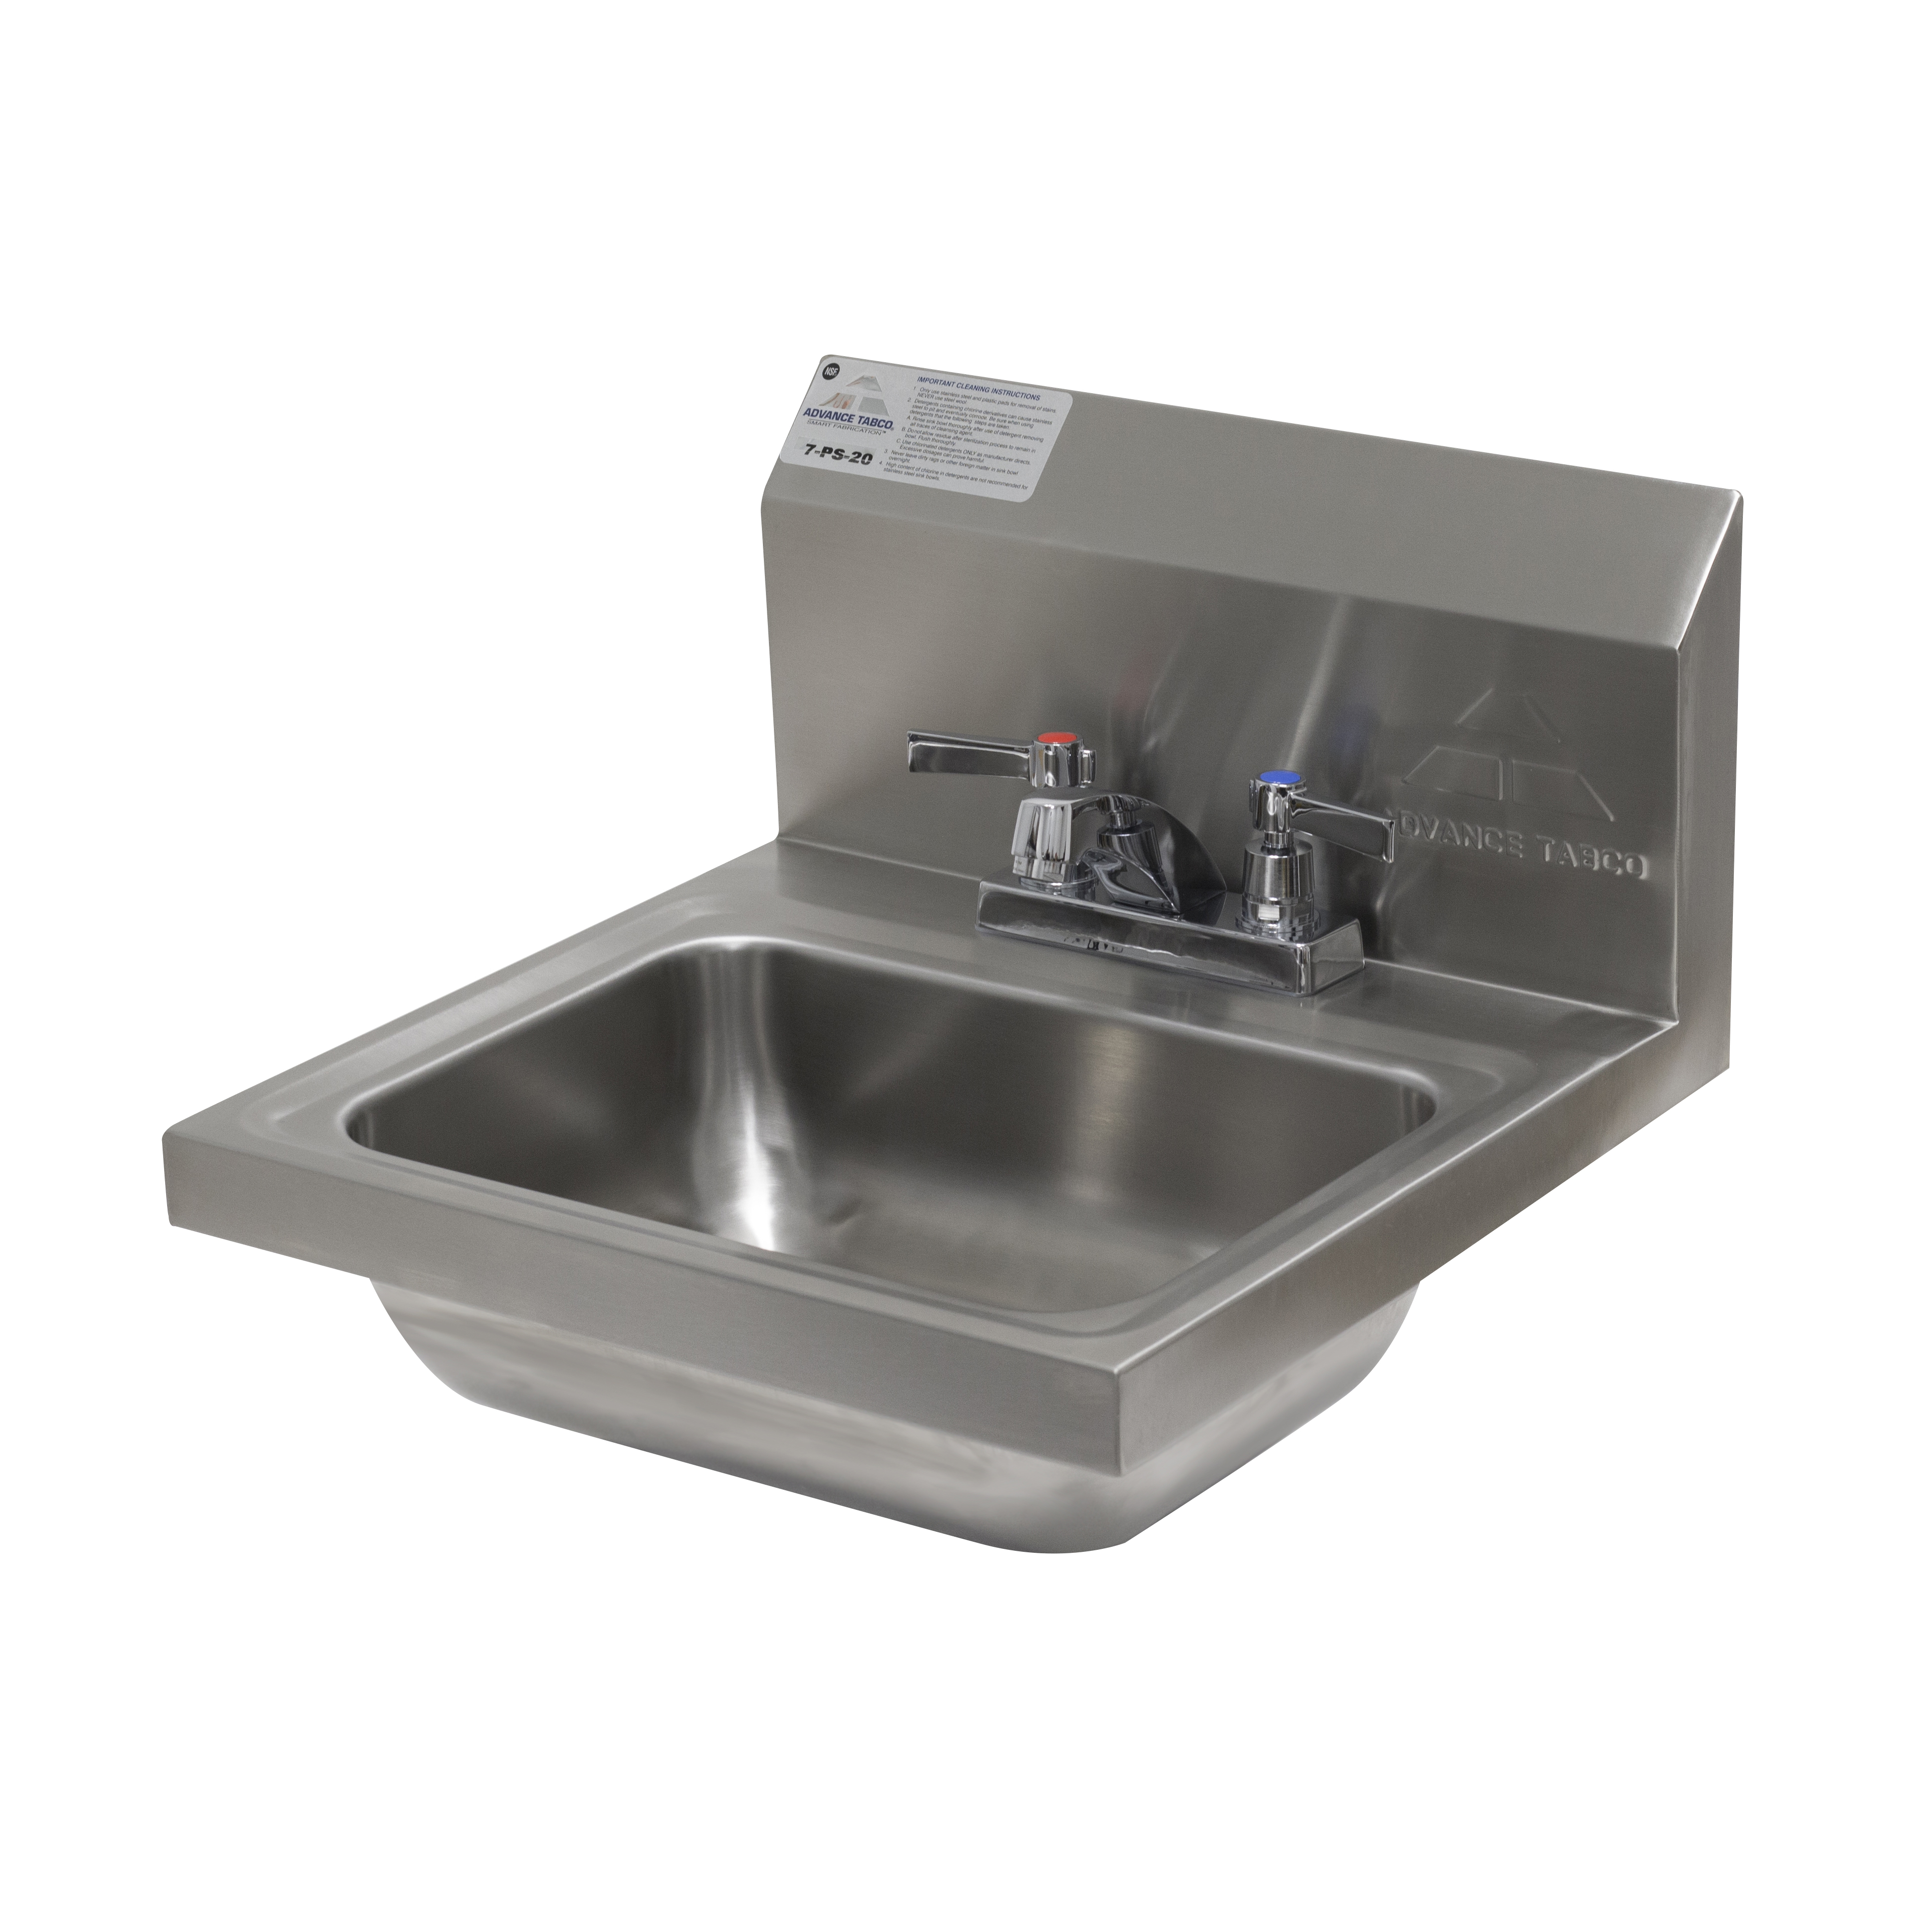 7-PS-20-1X Advance Tabco 1X sink, hand